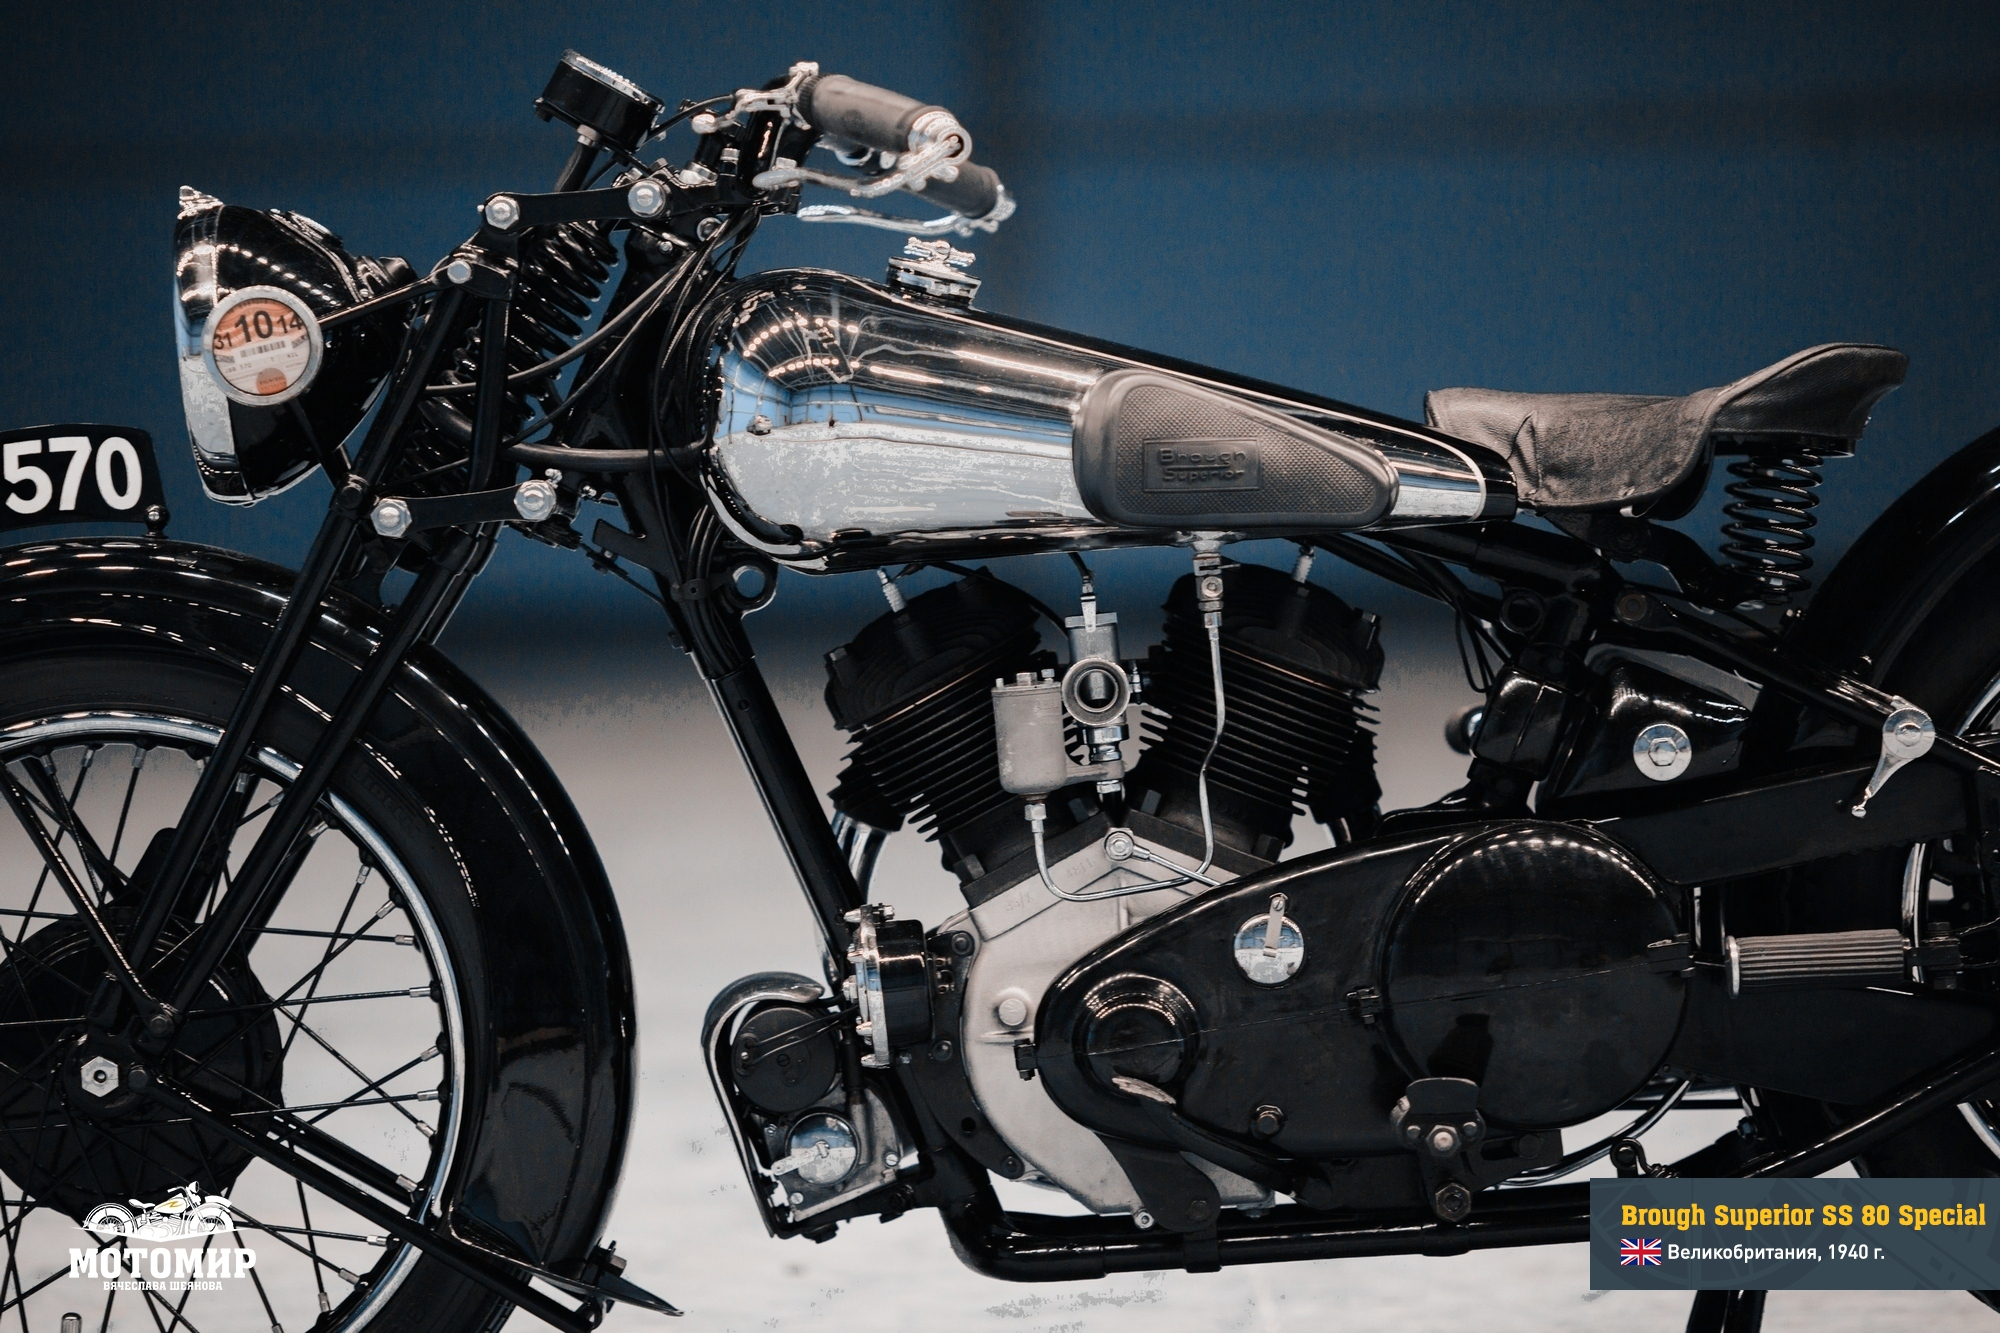 brough-superior-ss-80-201502-web-09